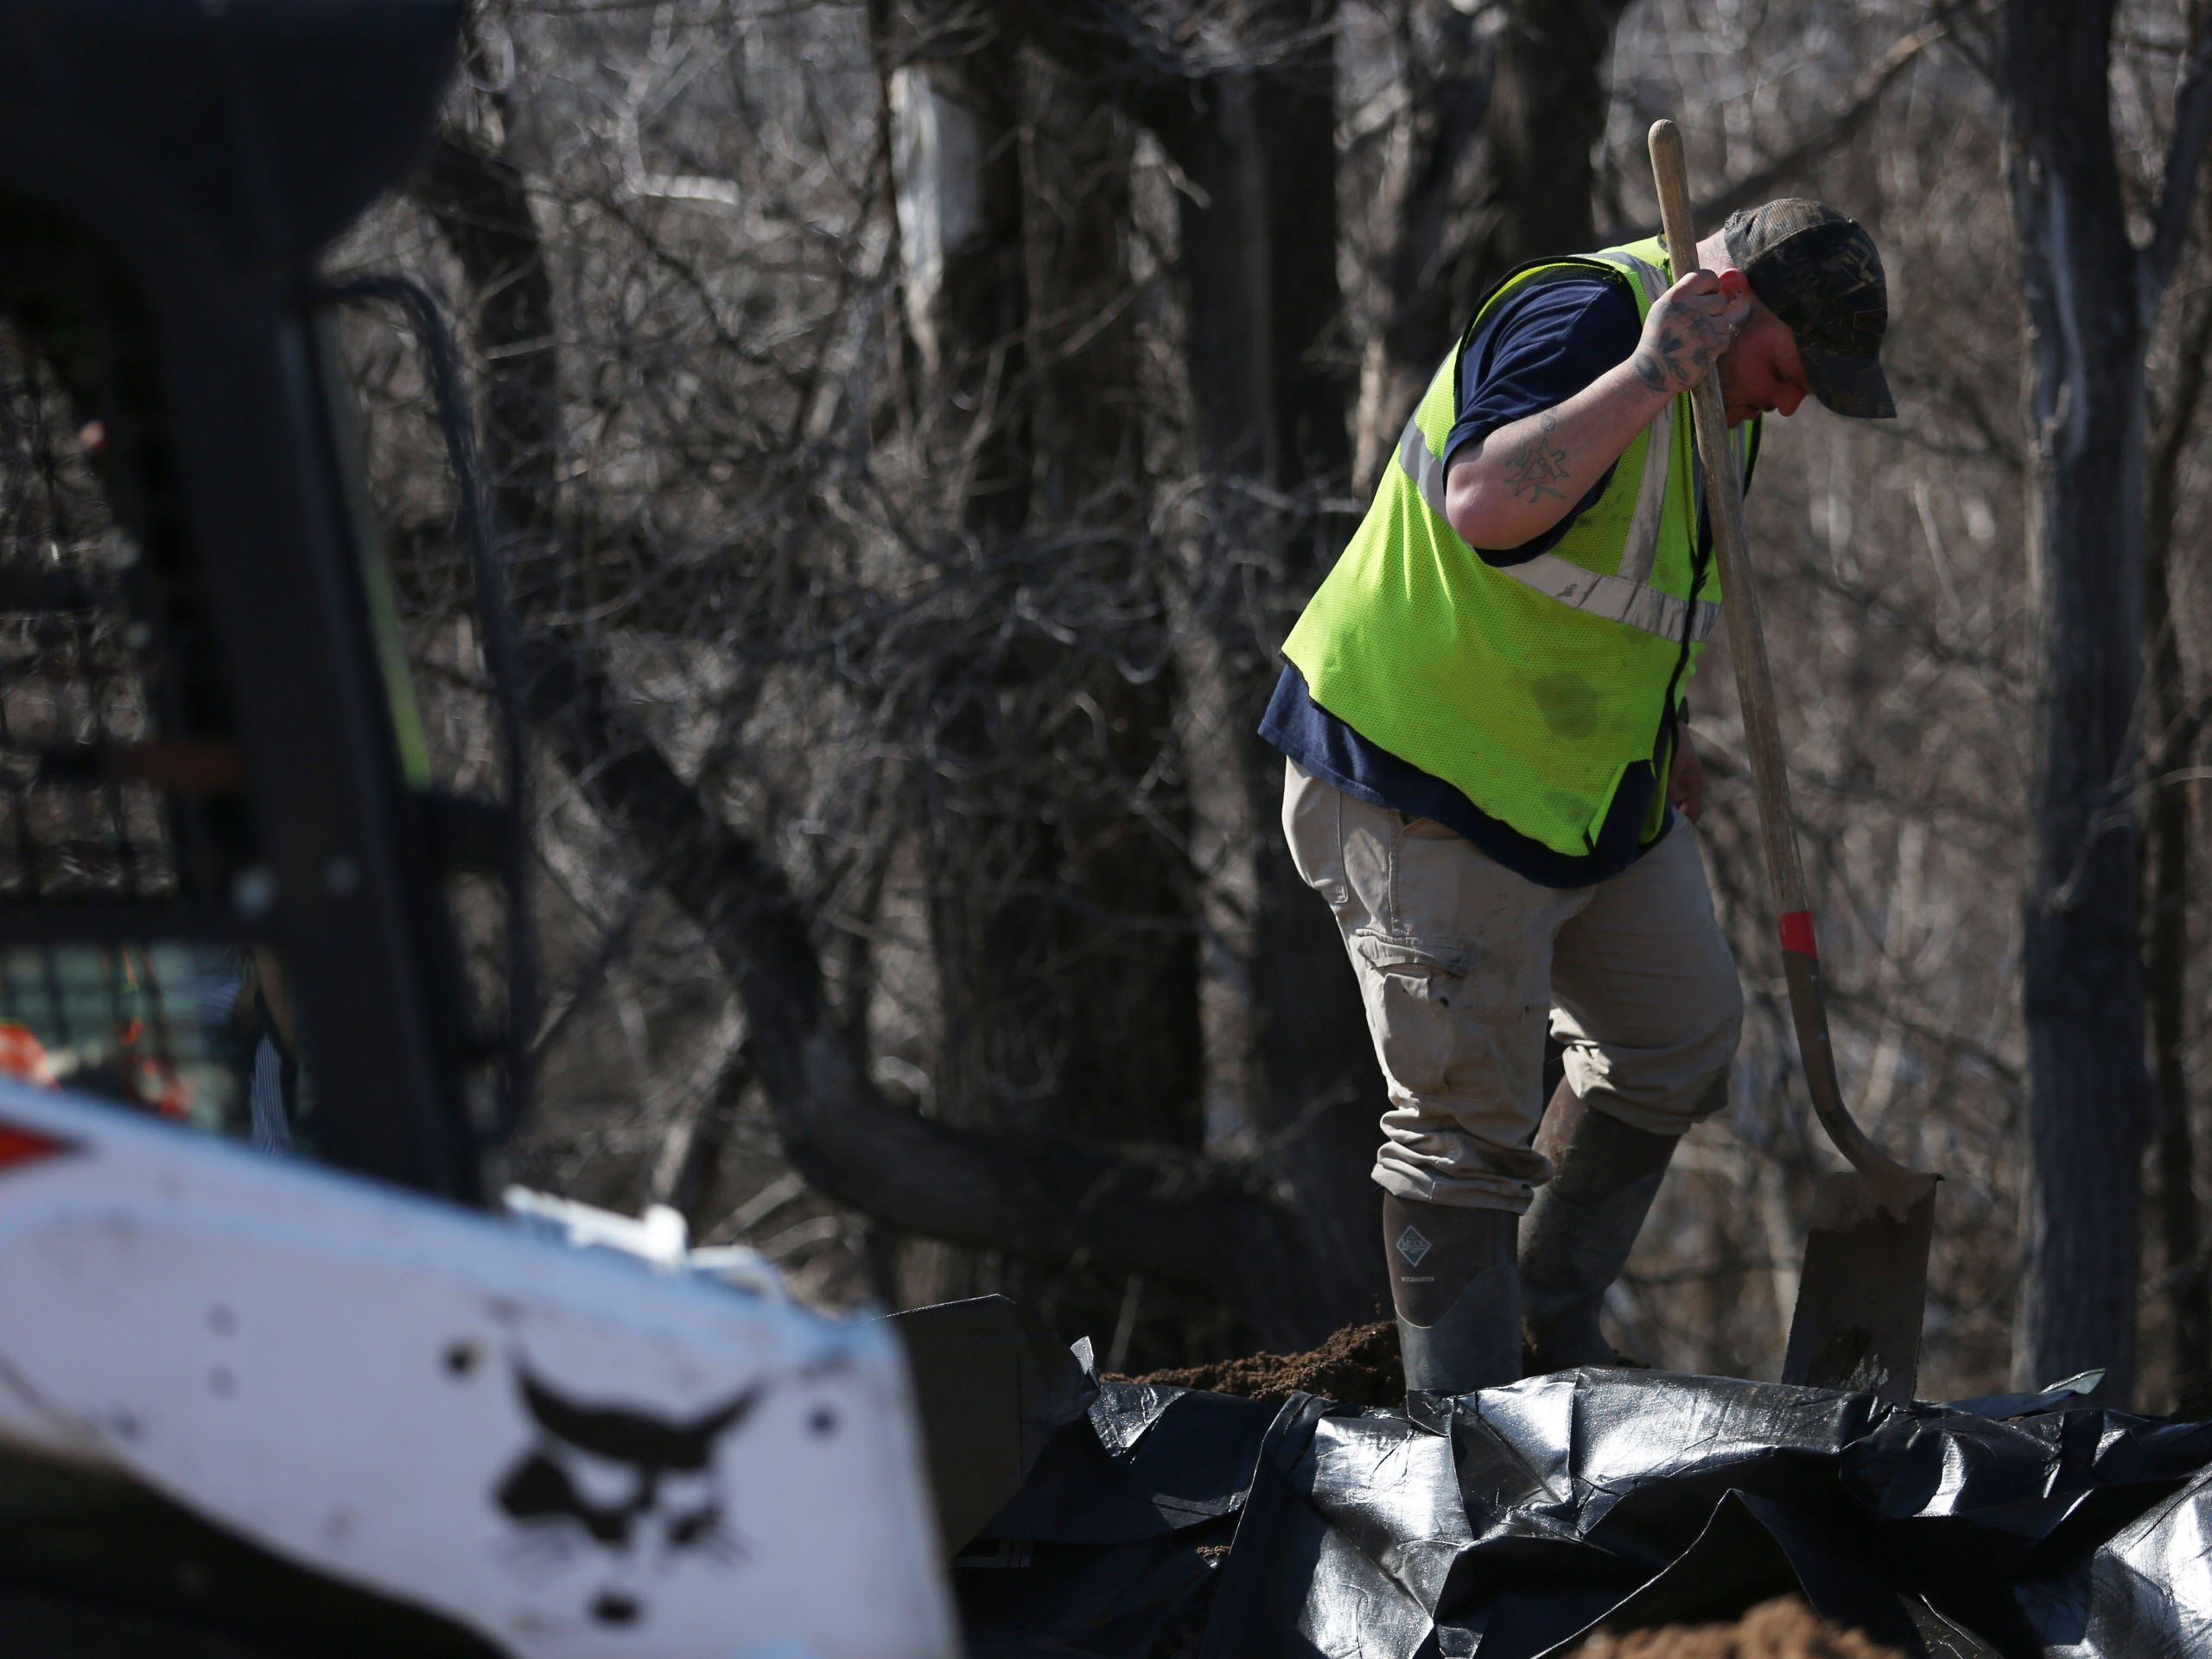 Cody Hilligas, with First Rate Excavate Labor, packs down sand inside trap bags along the Big Sioux River and Tomar Park March 21, 2019. The City of Sioux Falls installed a trap bag system near the Lotta Street and Minnesota Avenue residential area in hopes of preventing flooding early next week.